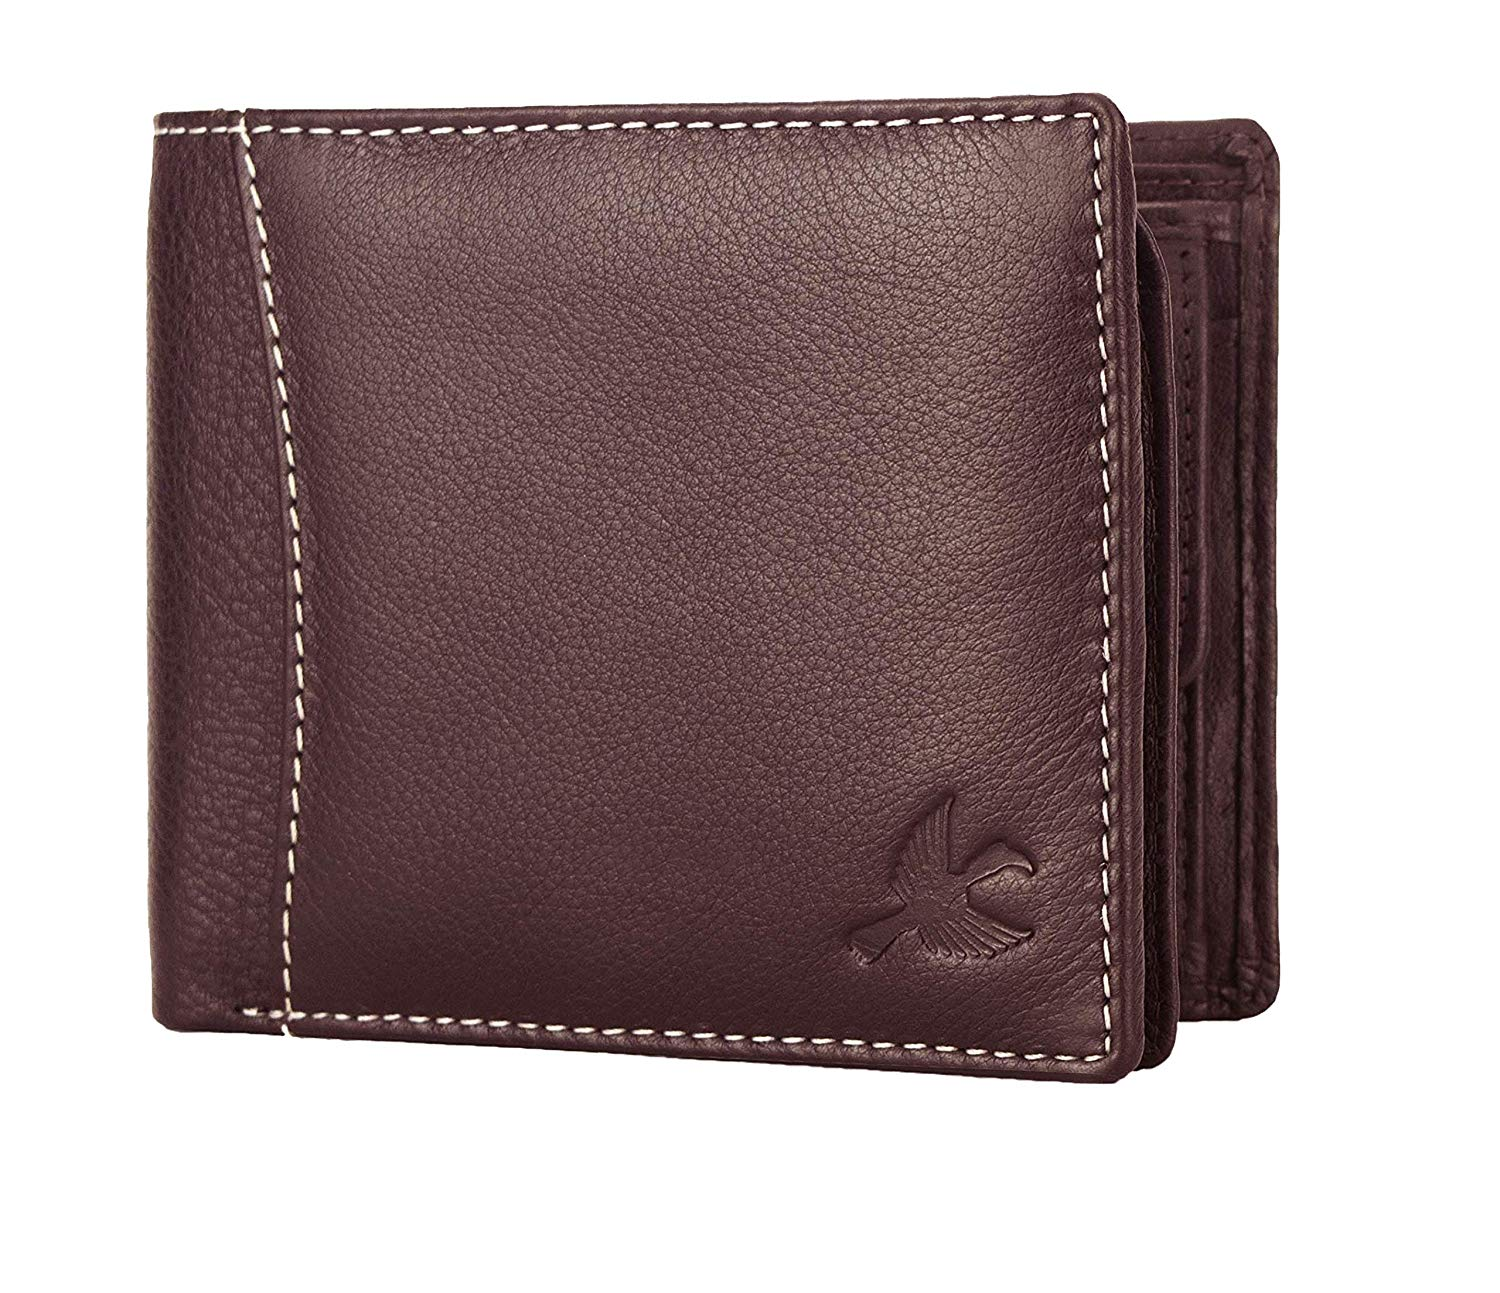 HORNBULL Men's Wallet Brown